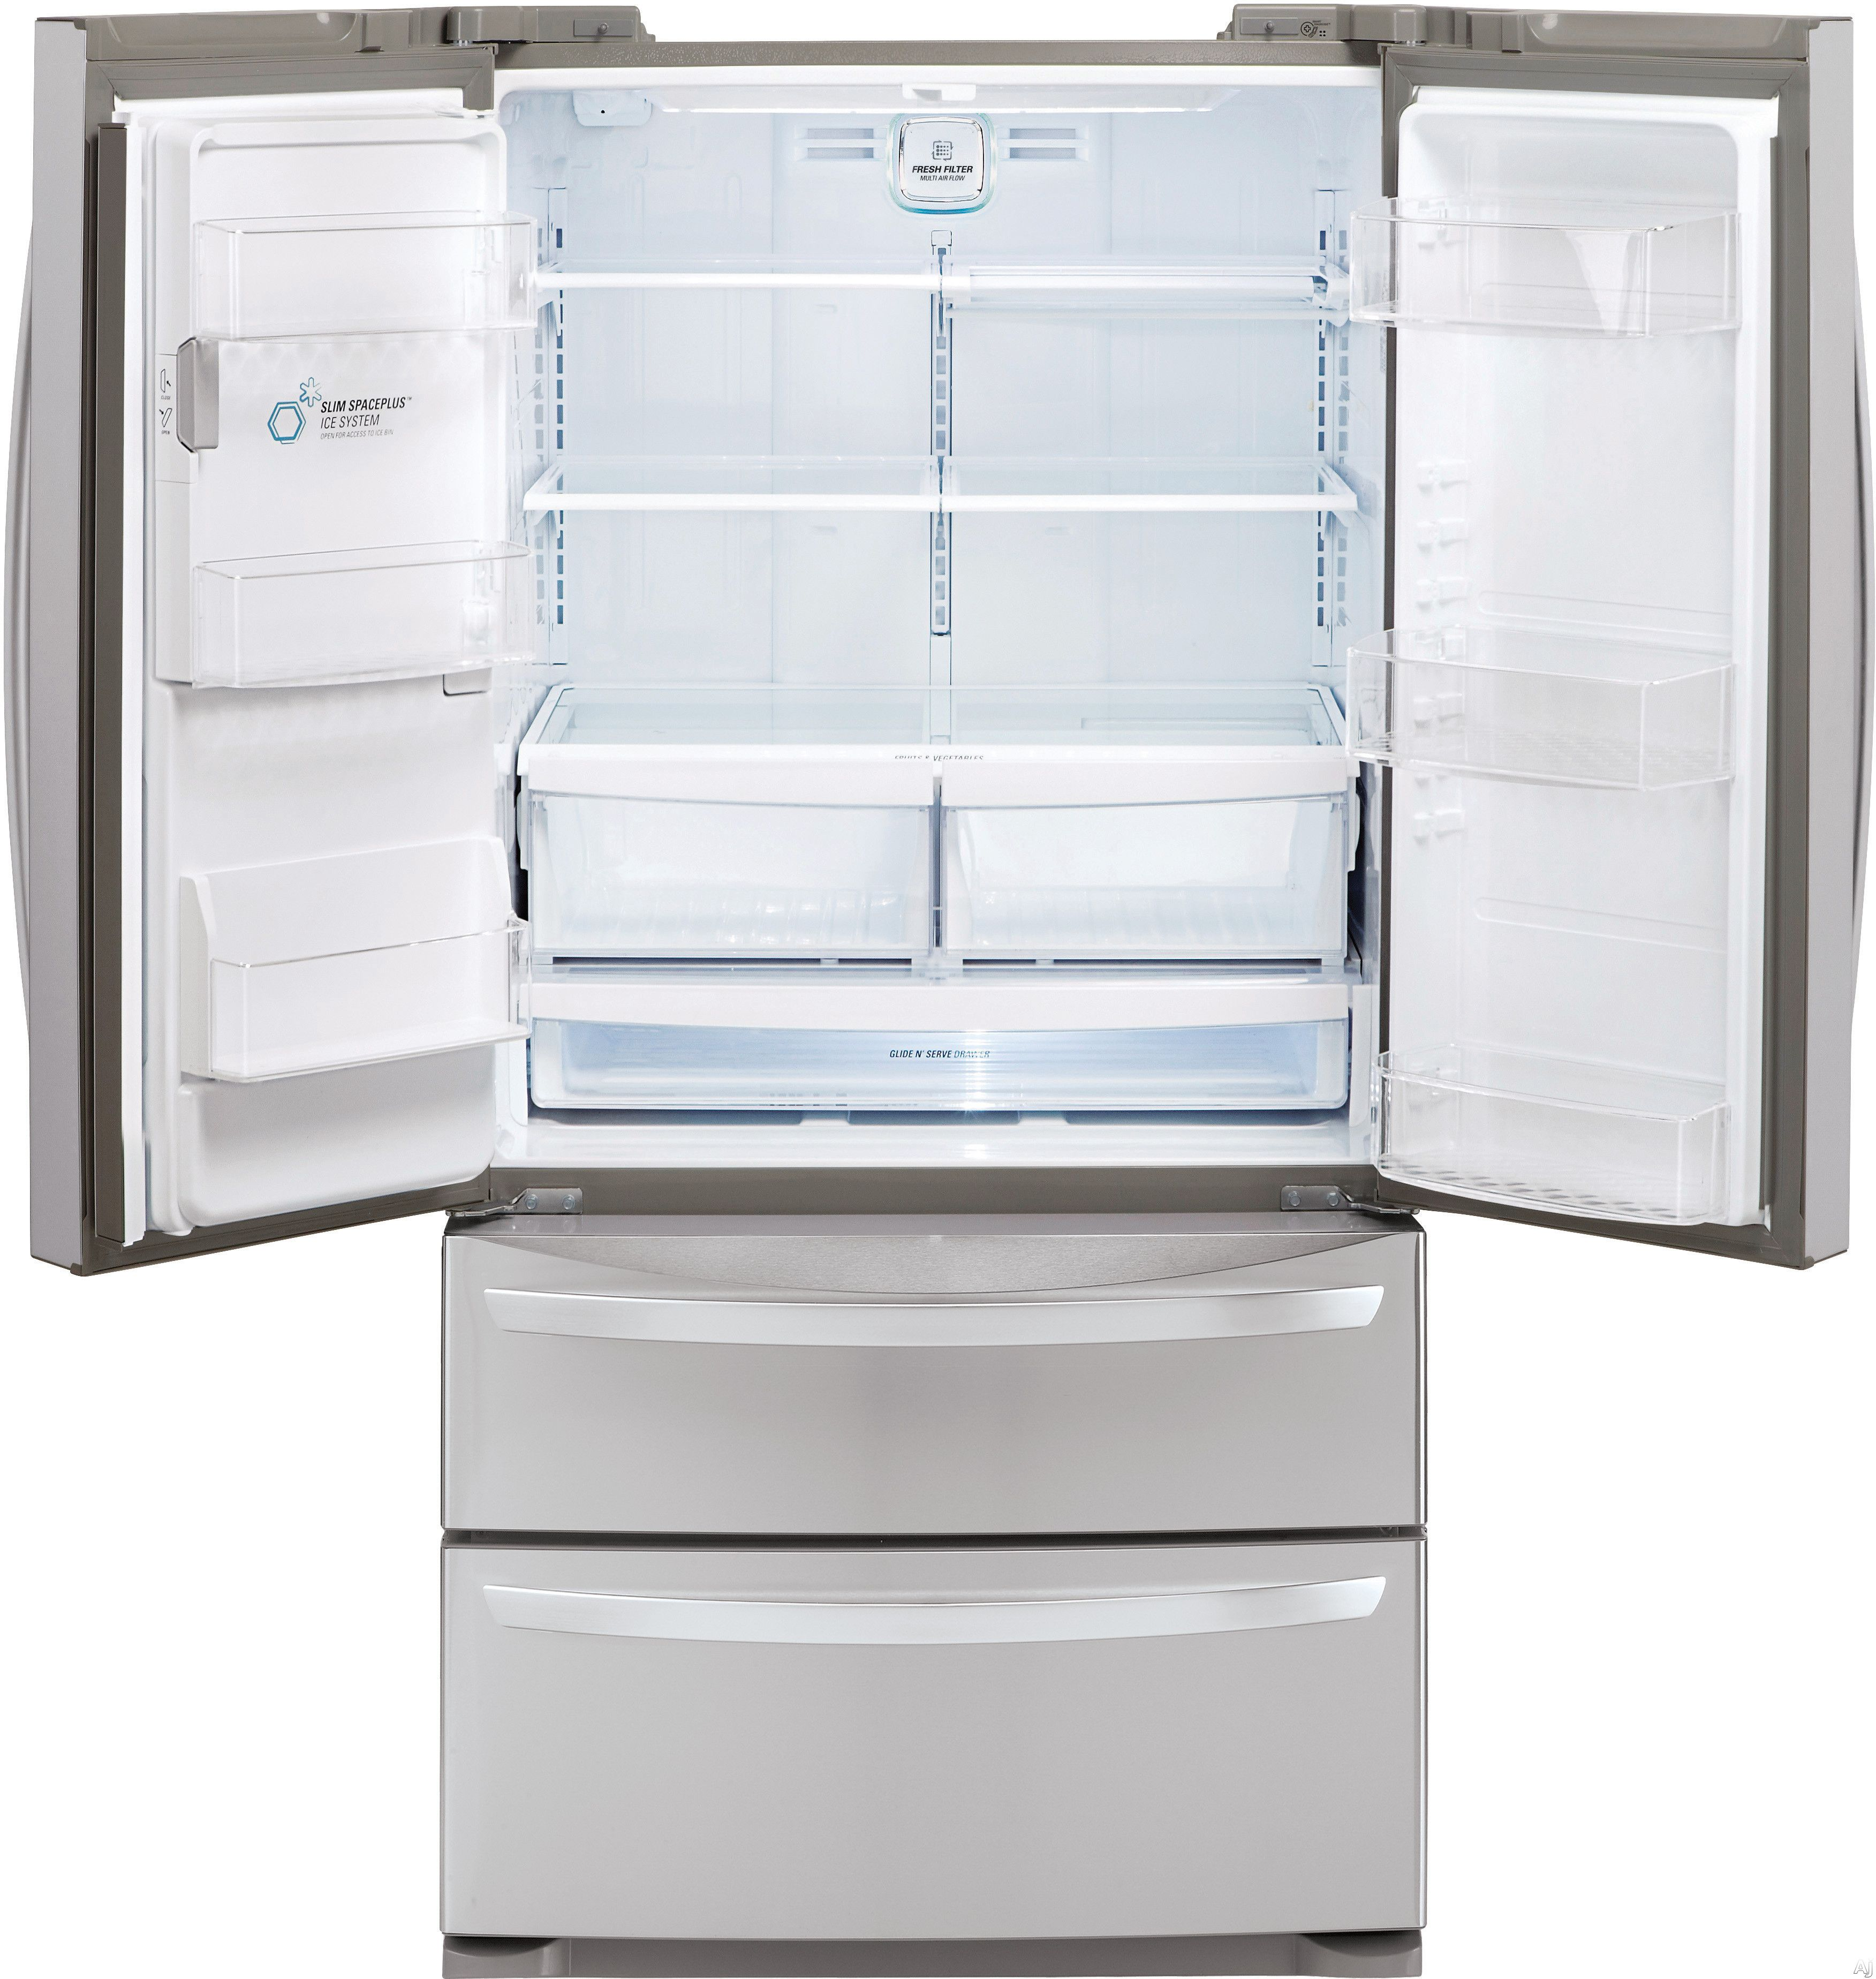 Lg Lmxs27626s 26 8 Cu Ft French Door Refrigerator With Glide N